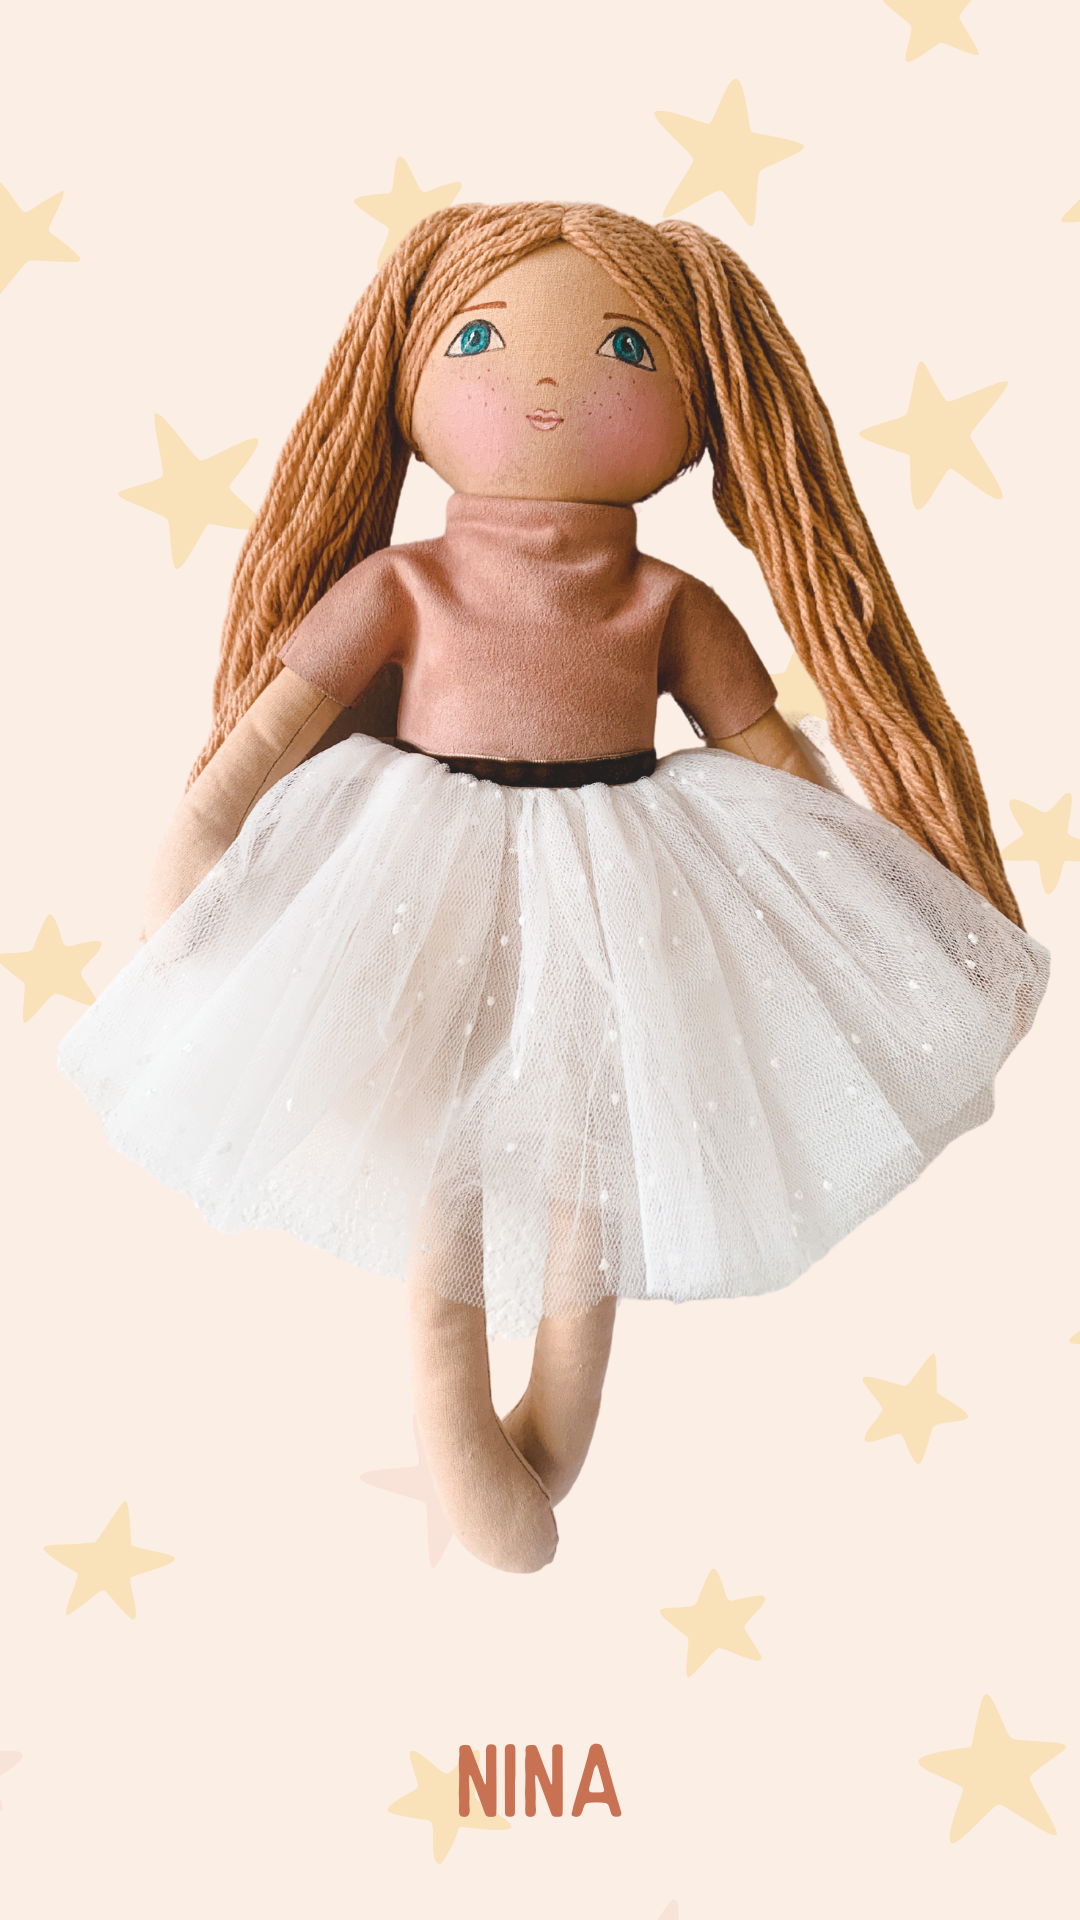 NINA - Handmade Heirloom Doll